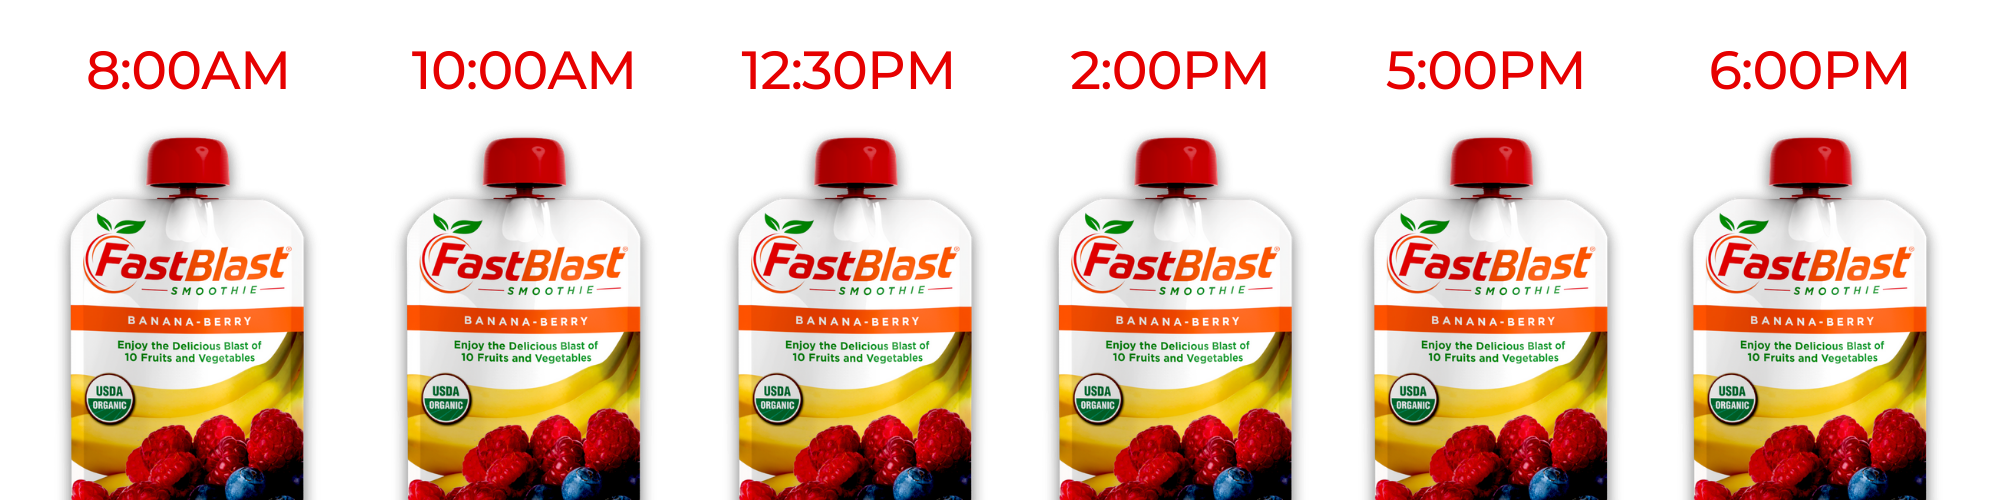 Fastblast smoothie scheduling of days and times